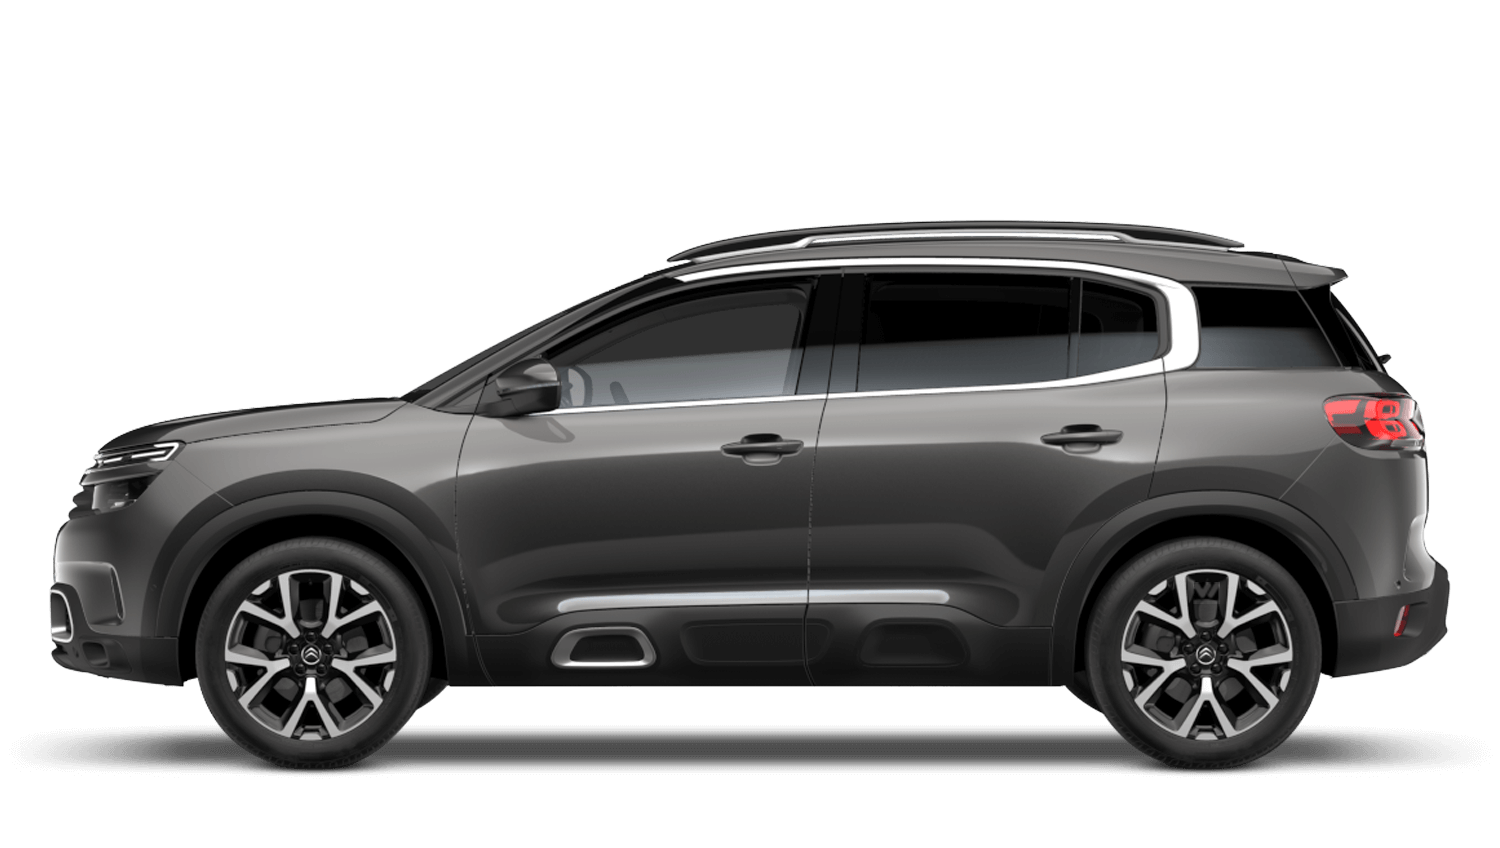 New CITROEN C5 Aircross SUV Personal Leasing Offer